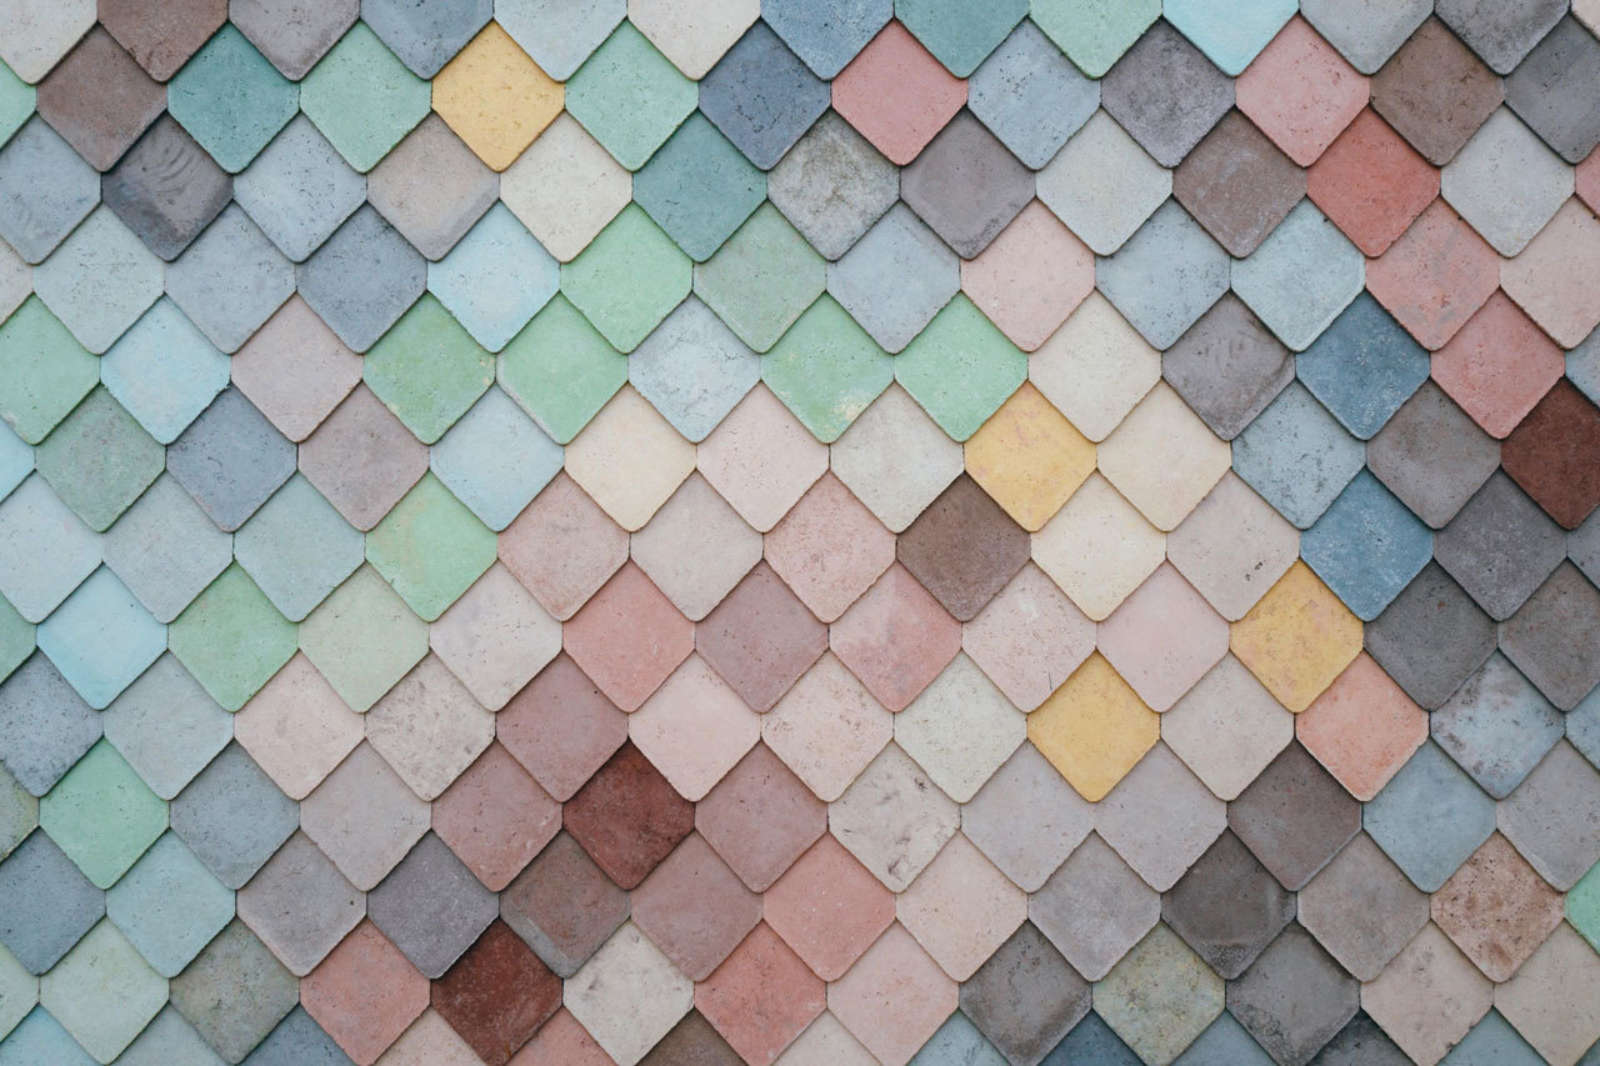 Multi color textured wall of mosaic tiles